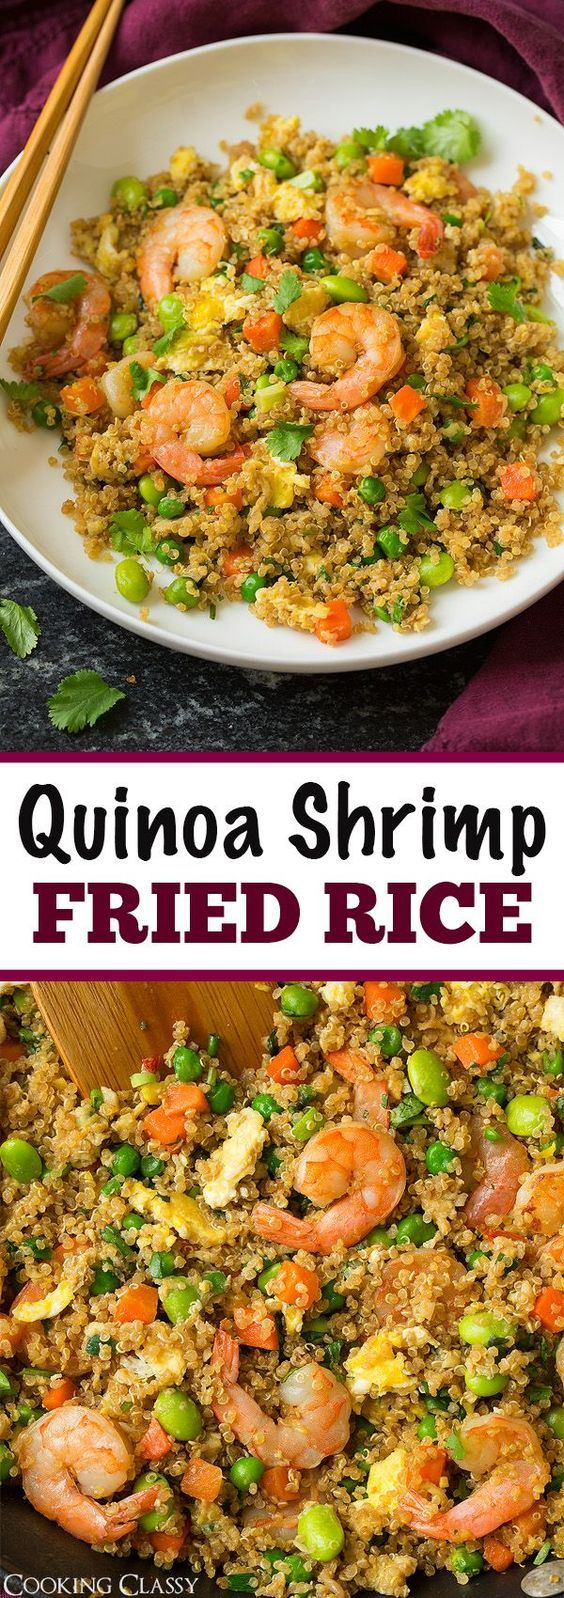 "Quinoa Shrimp ""Fried Rice"" - a healthier take on classic fried rice yet equally as delicious!"